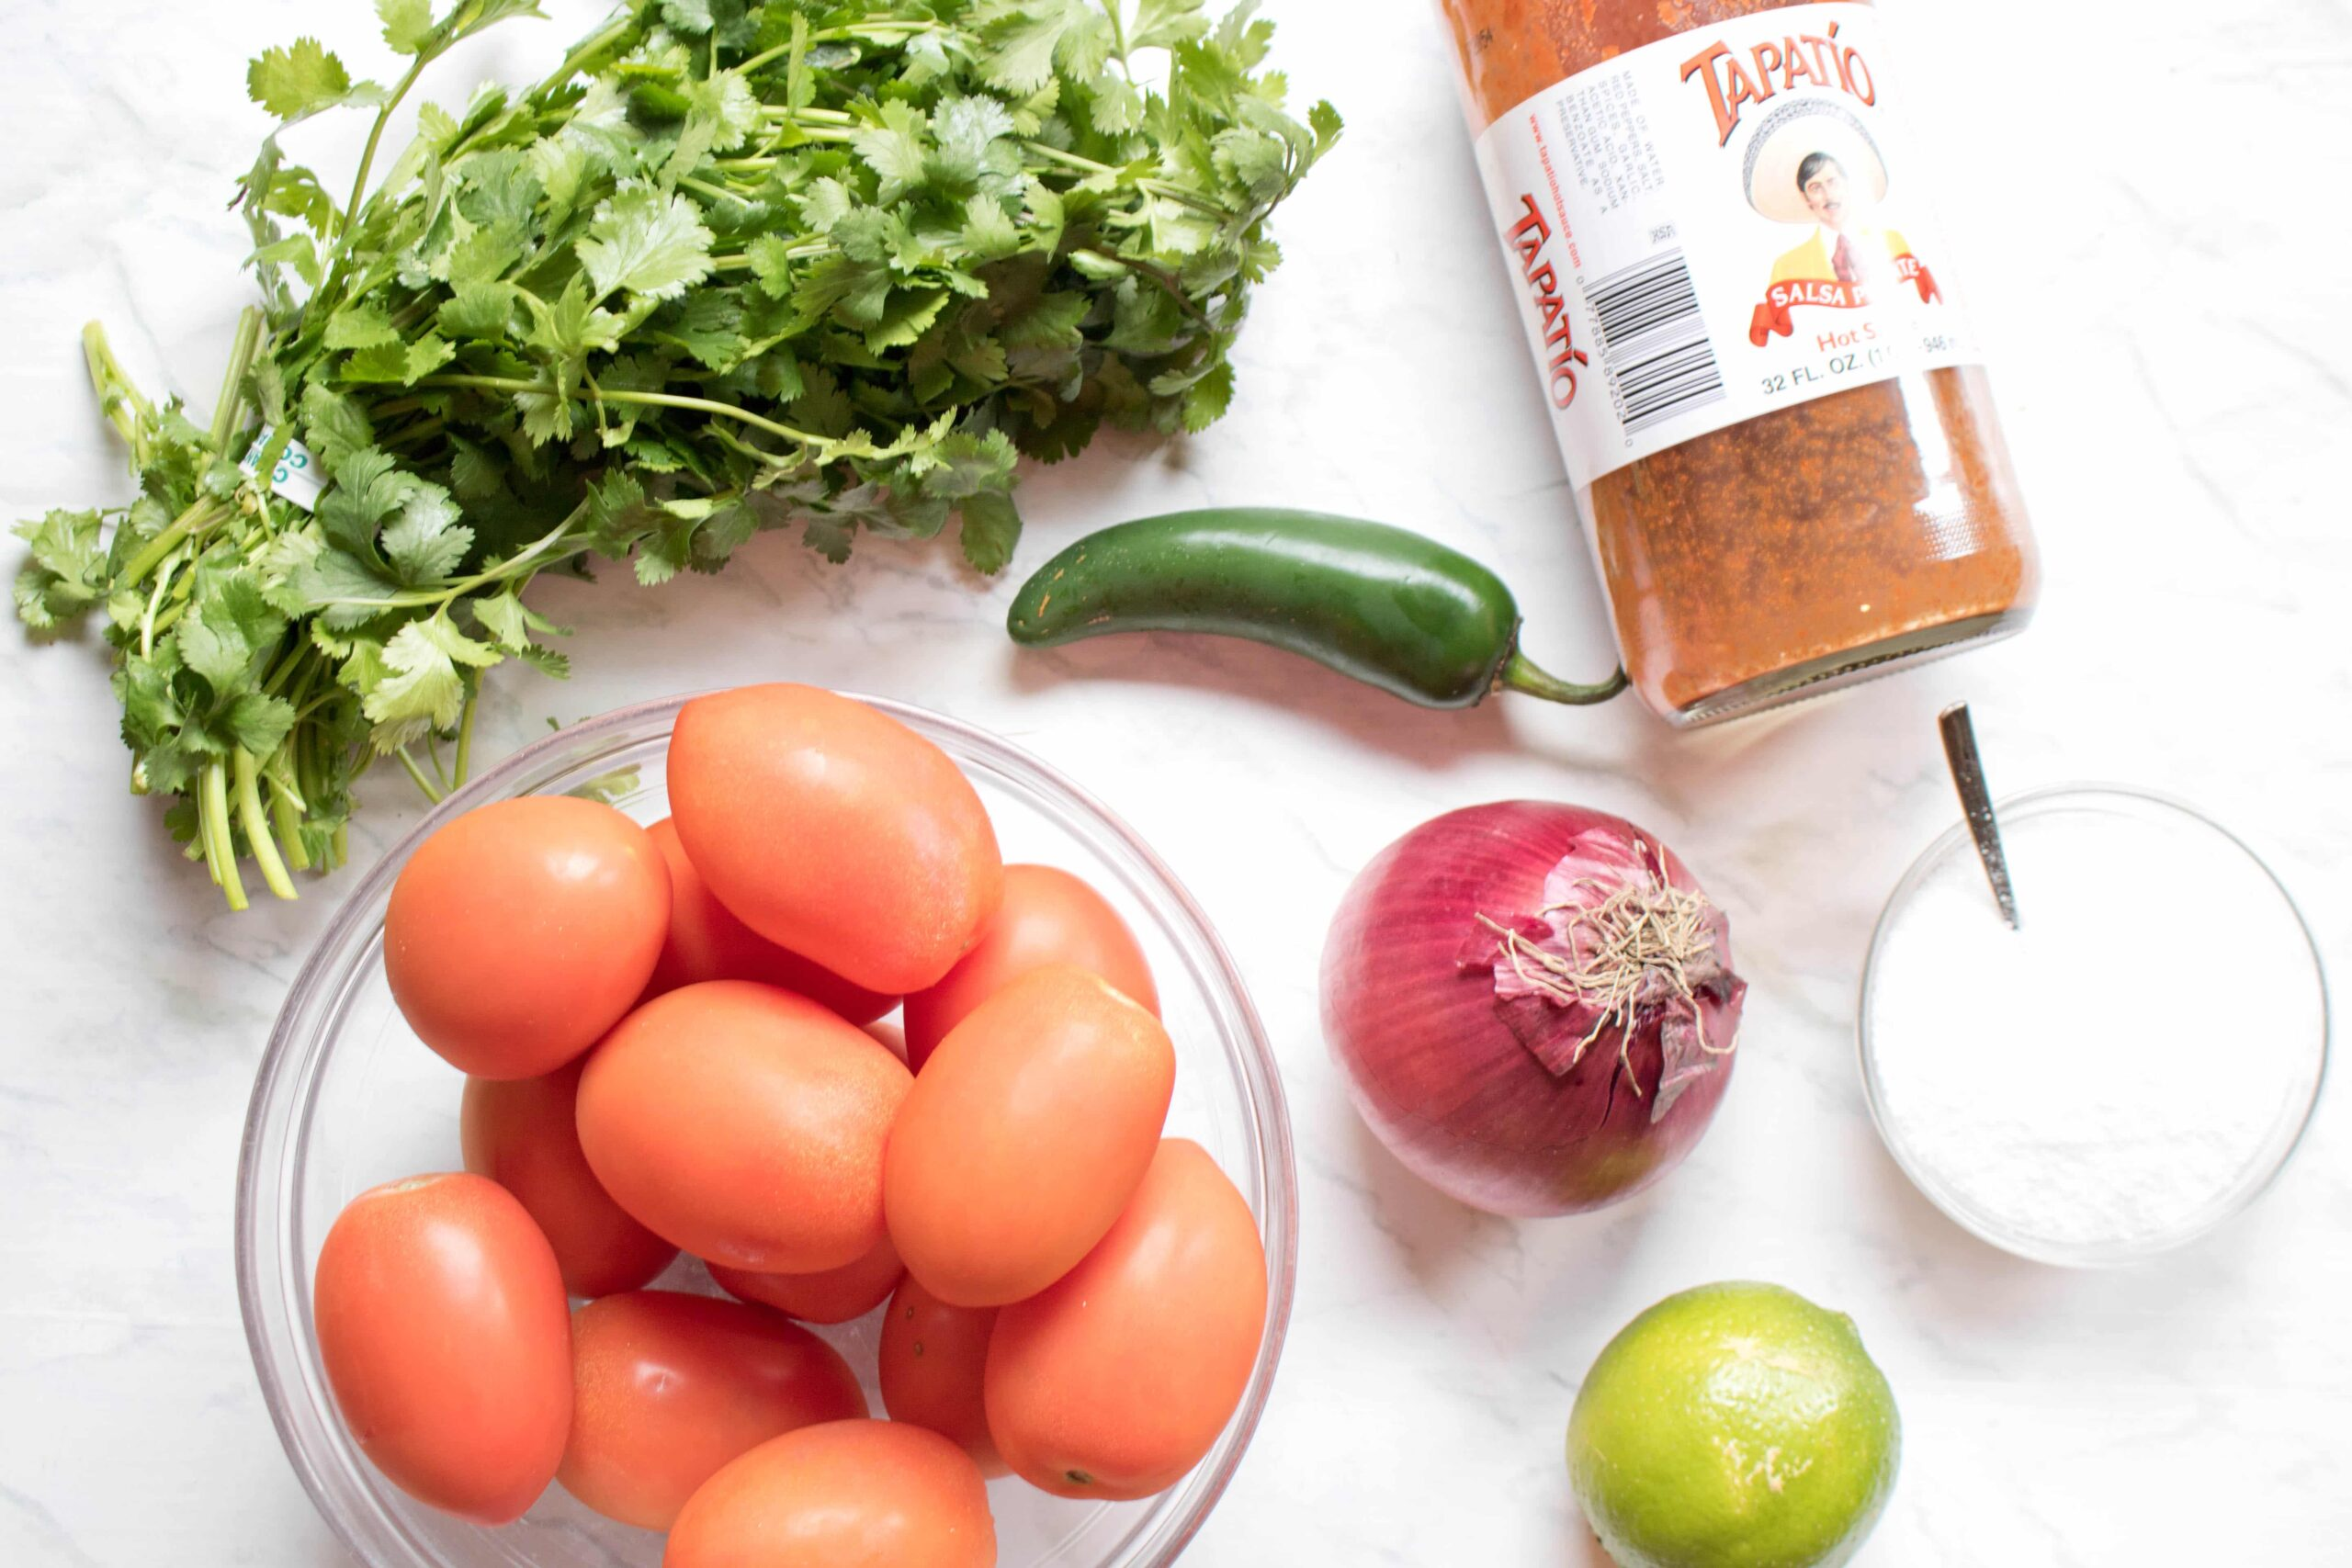 Forget store bought!  You can make your own Fresh, Easy Pico de Gallo From Scratch with just a few simple ingredients and less than 10 minutes!